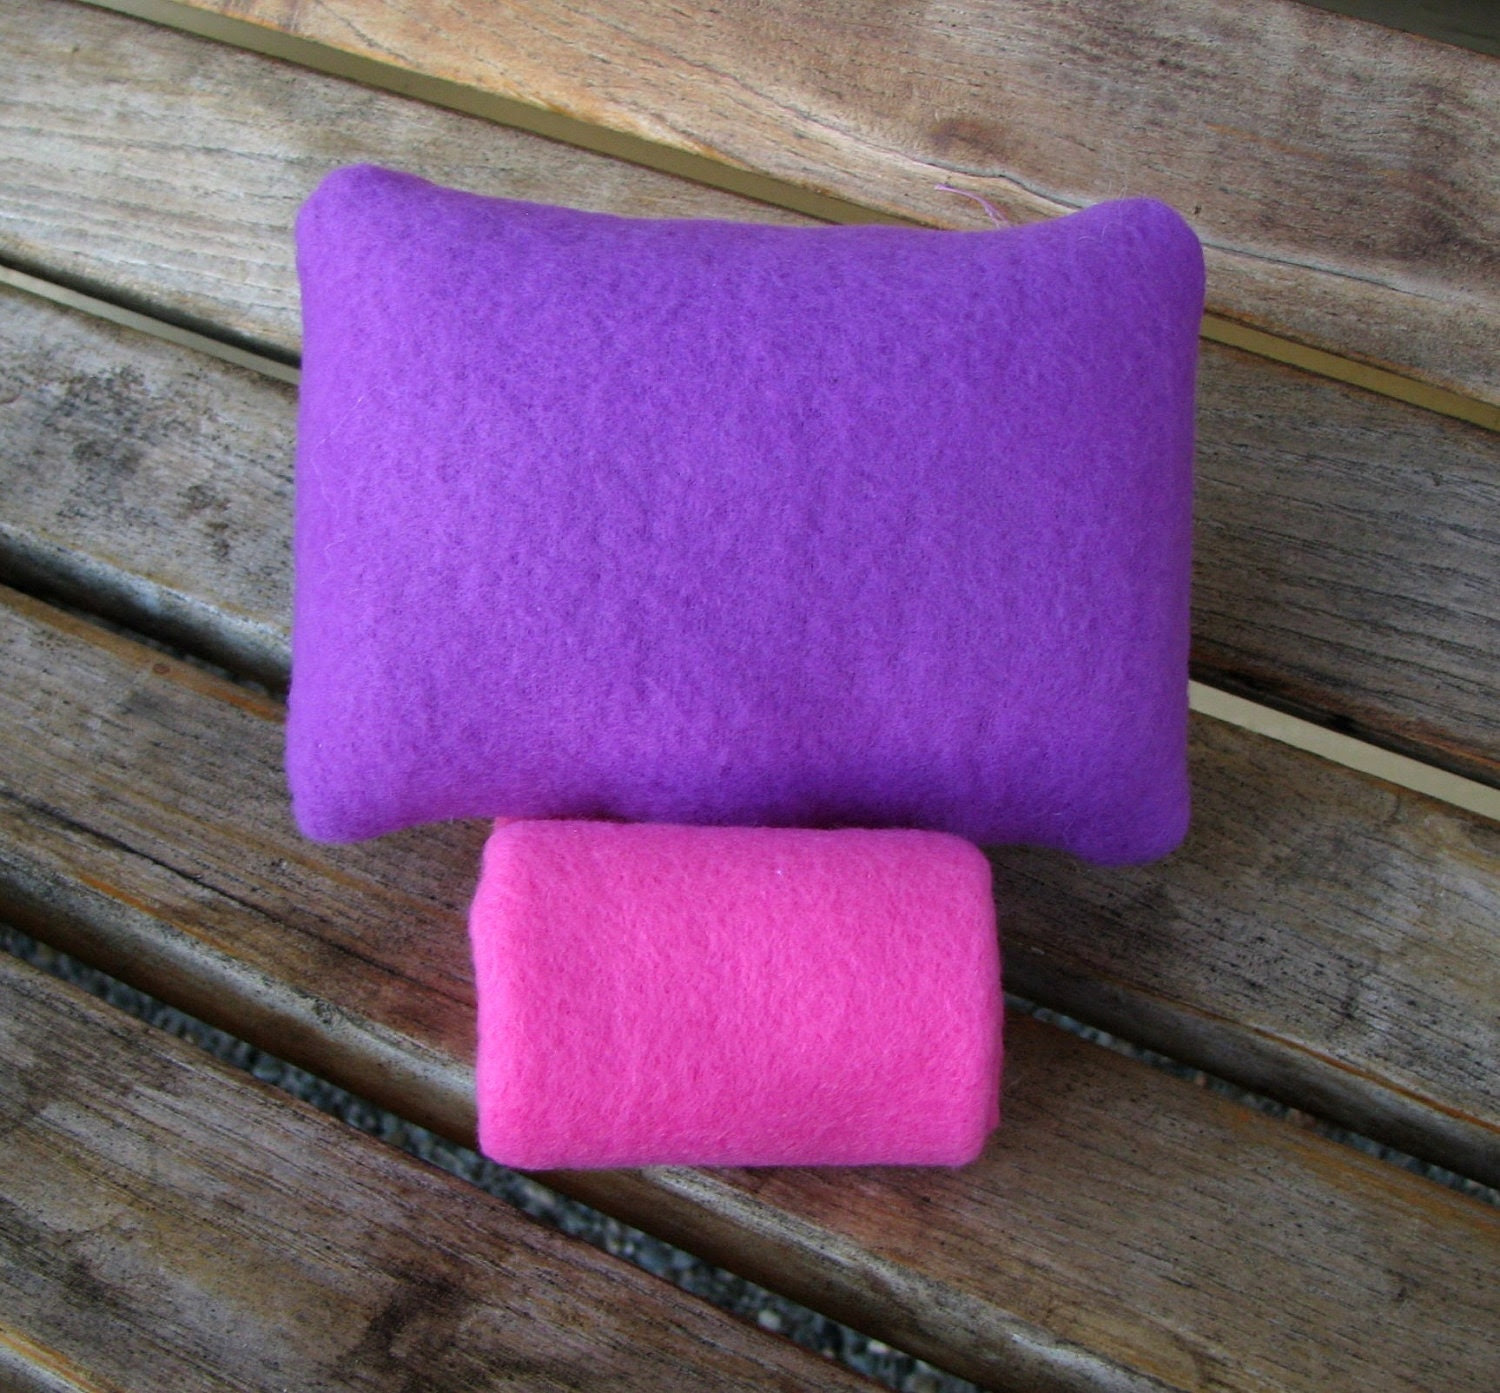 Car Comfort Toddler Booster Seat Child Seatbelt Cover Travel Neck Pillow by SleepyTimez - Purple and Pink